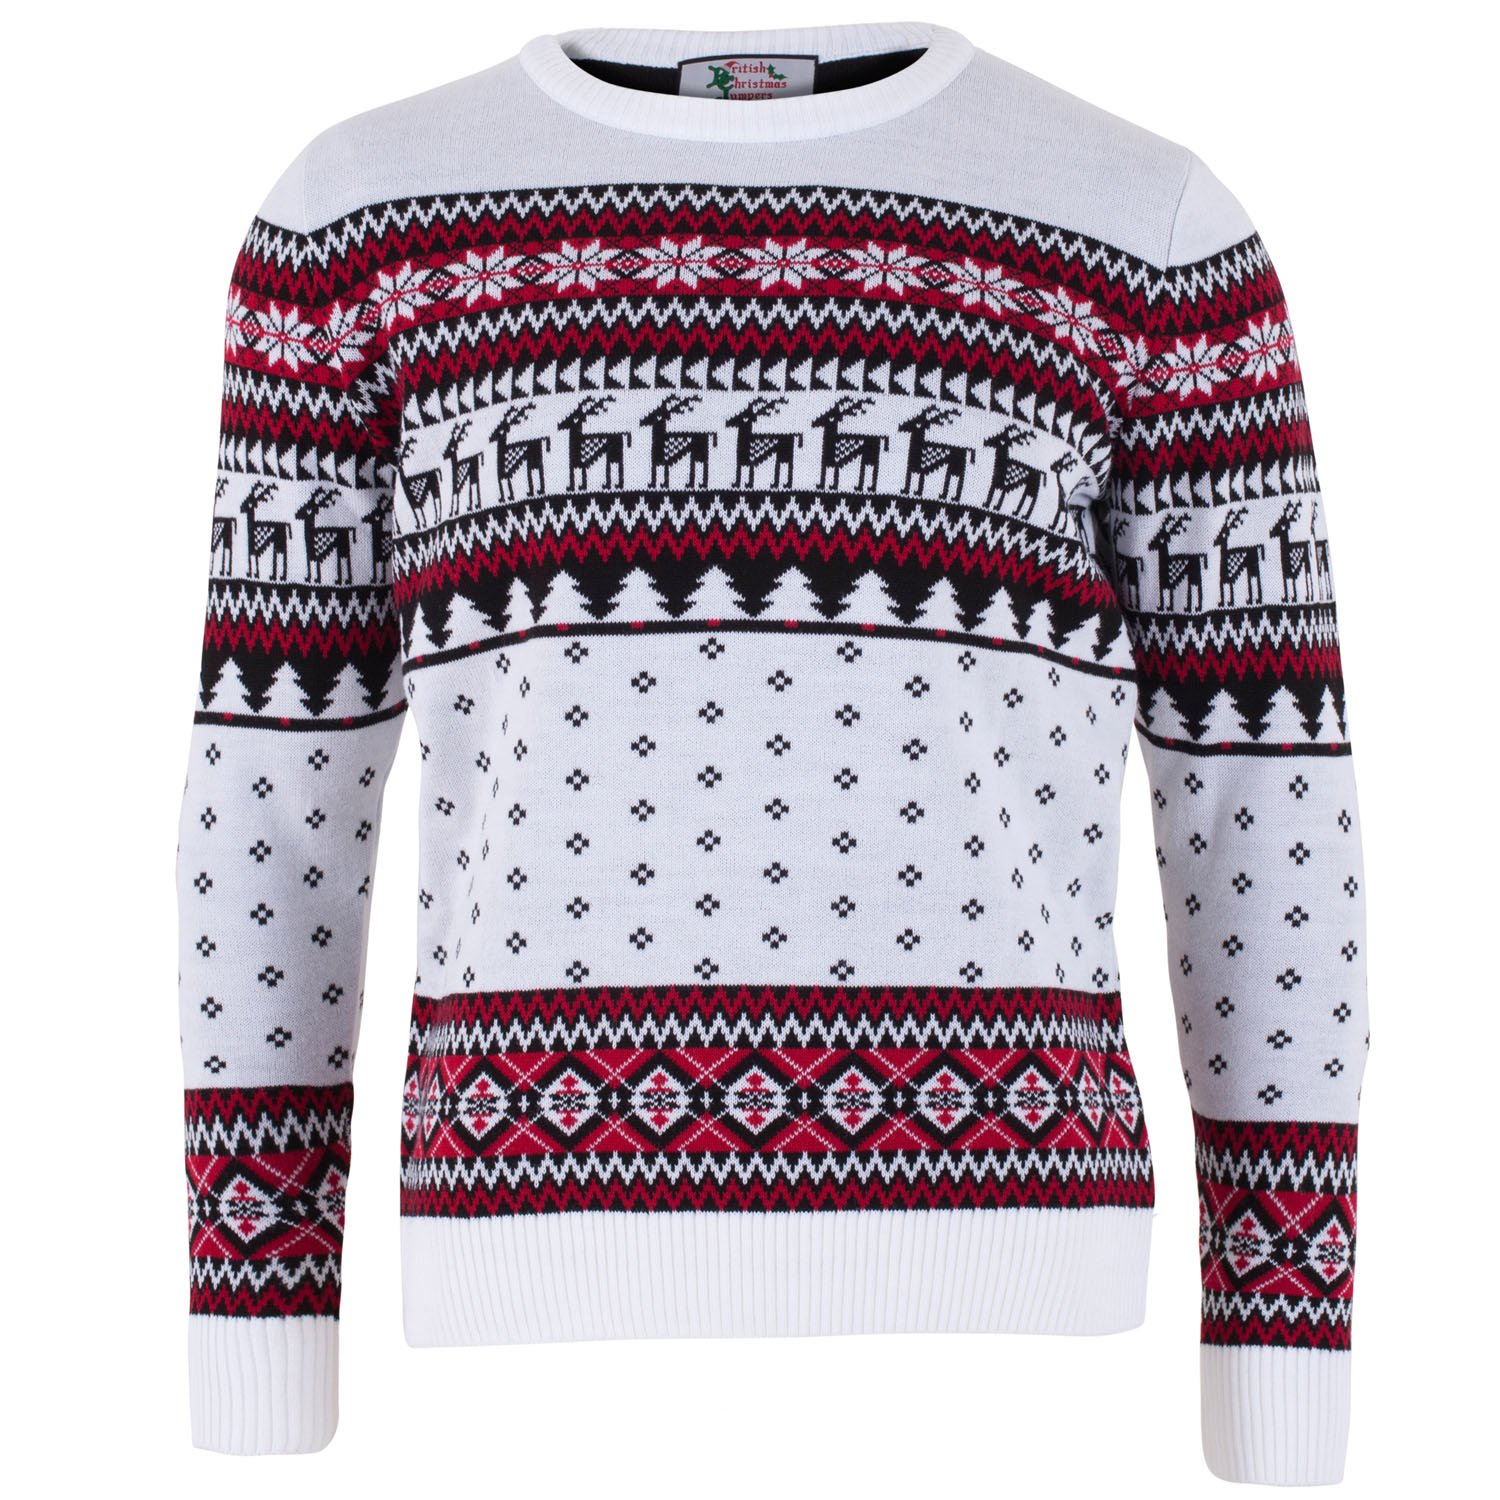 Christmas Jumper Day at Oxton Grange - Springcare Care Homes